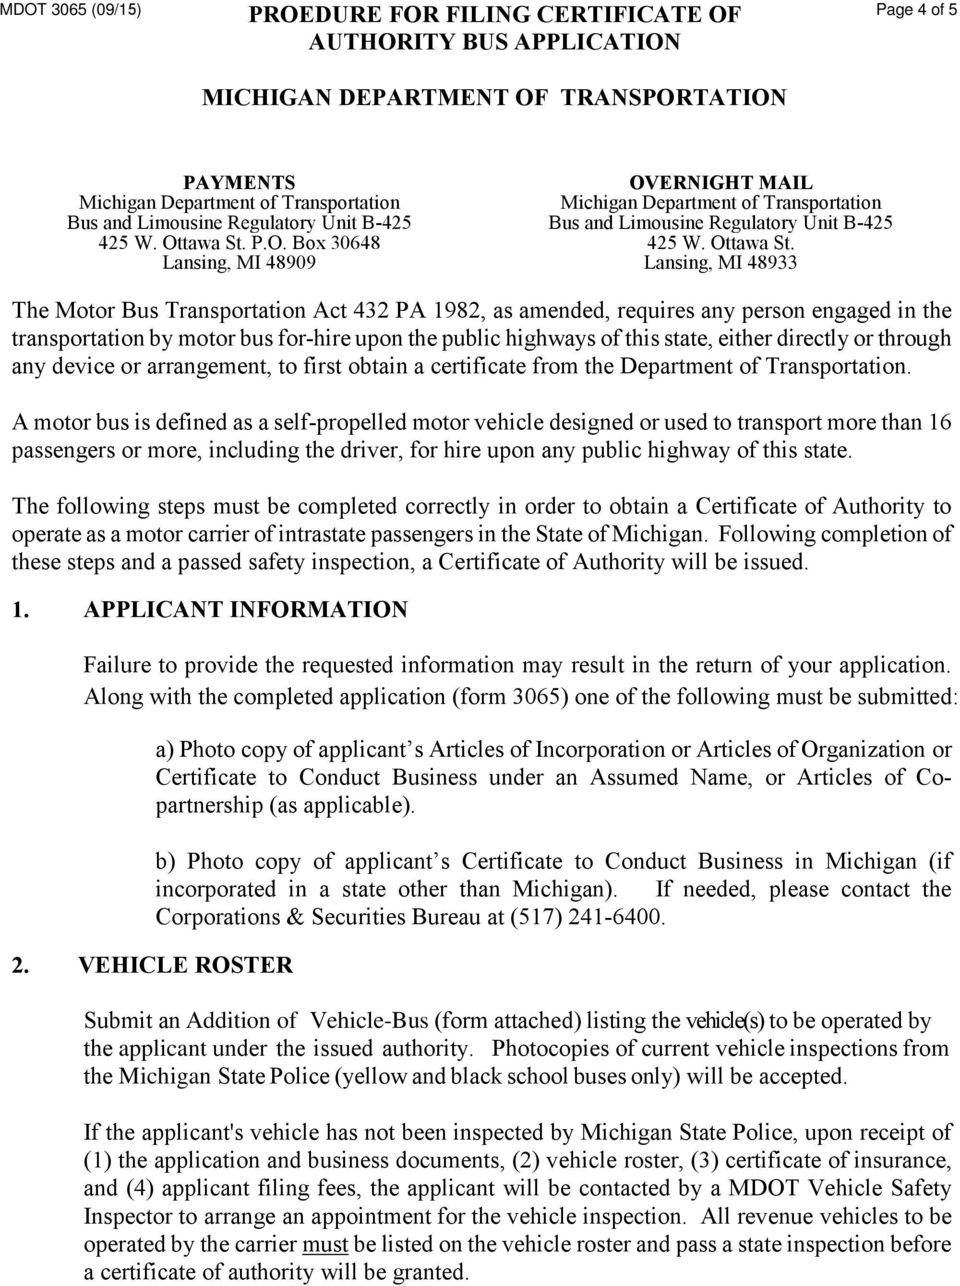 Application For Certificate Of Authority Bus Pdf